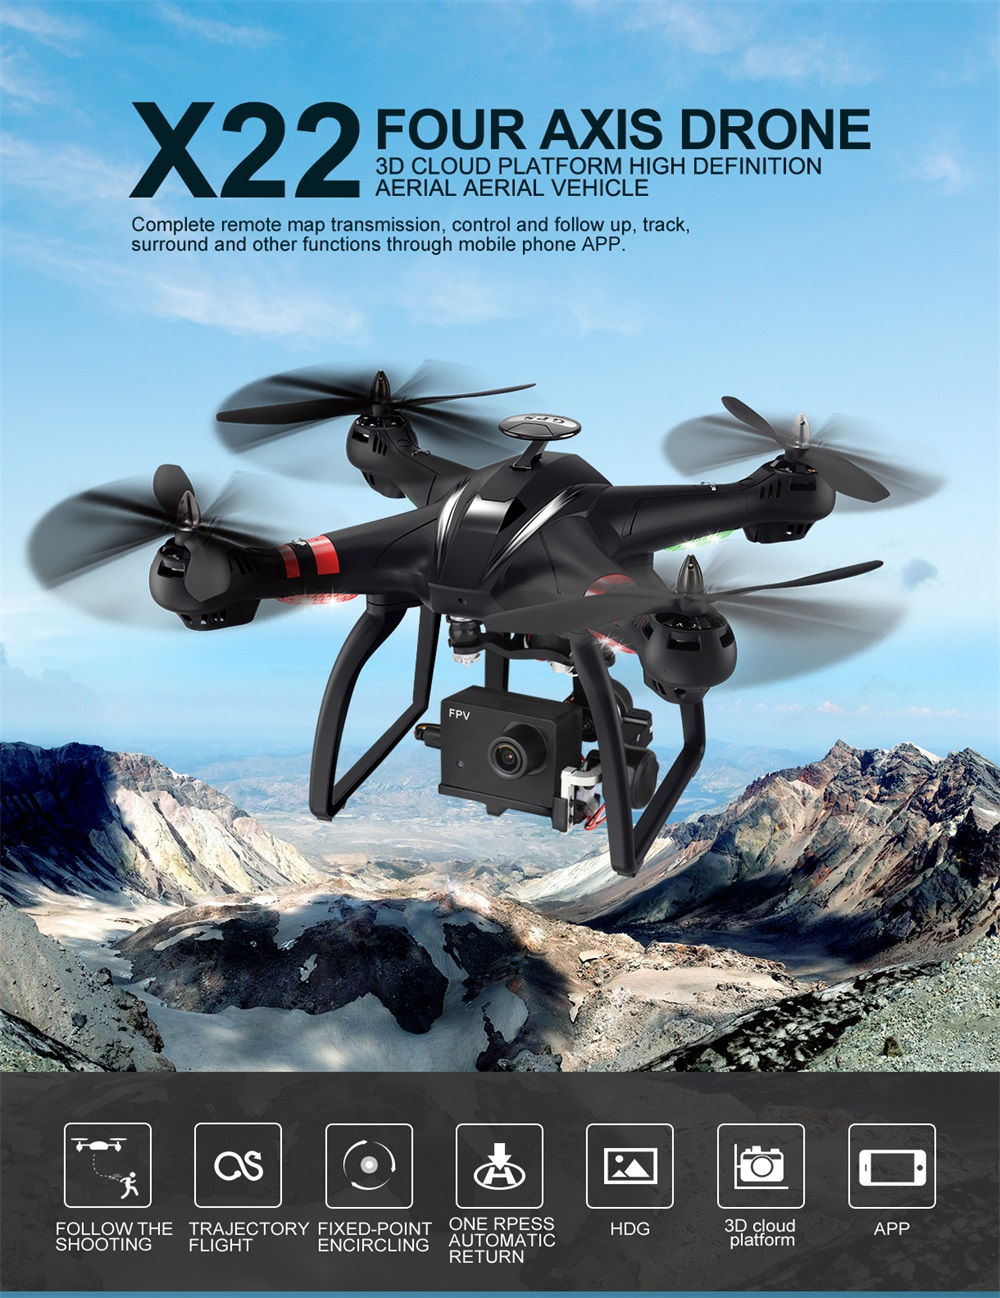 BAYANGTOYS X22 1080P Camera Brushless Motor Dual GPS WIFI FPV with 4-Axis Gimbal RC Drone Quadcopter RTF 2015 hot sale quadcopter 3 axis gimbal brushless ptz dys w 4108 motor evvgc controller for nex ildc camera